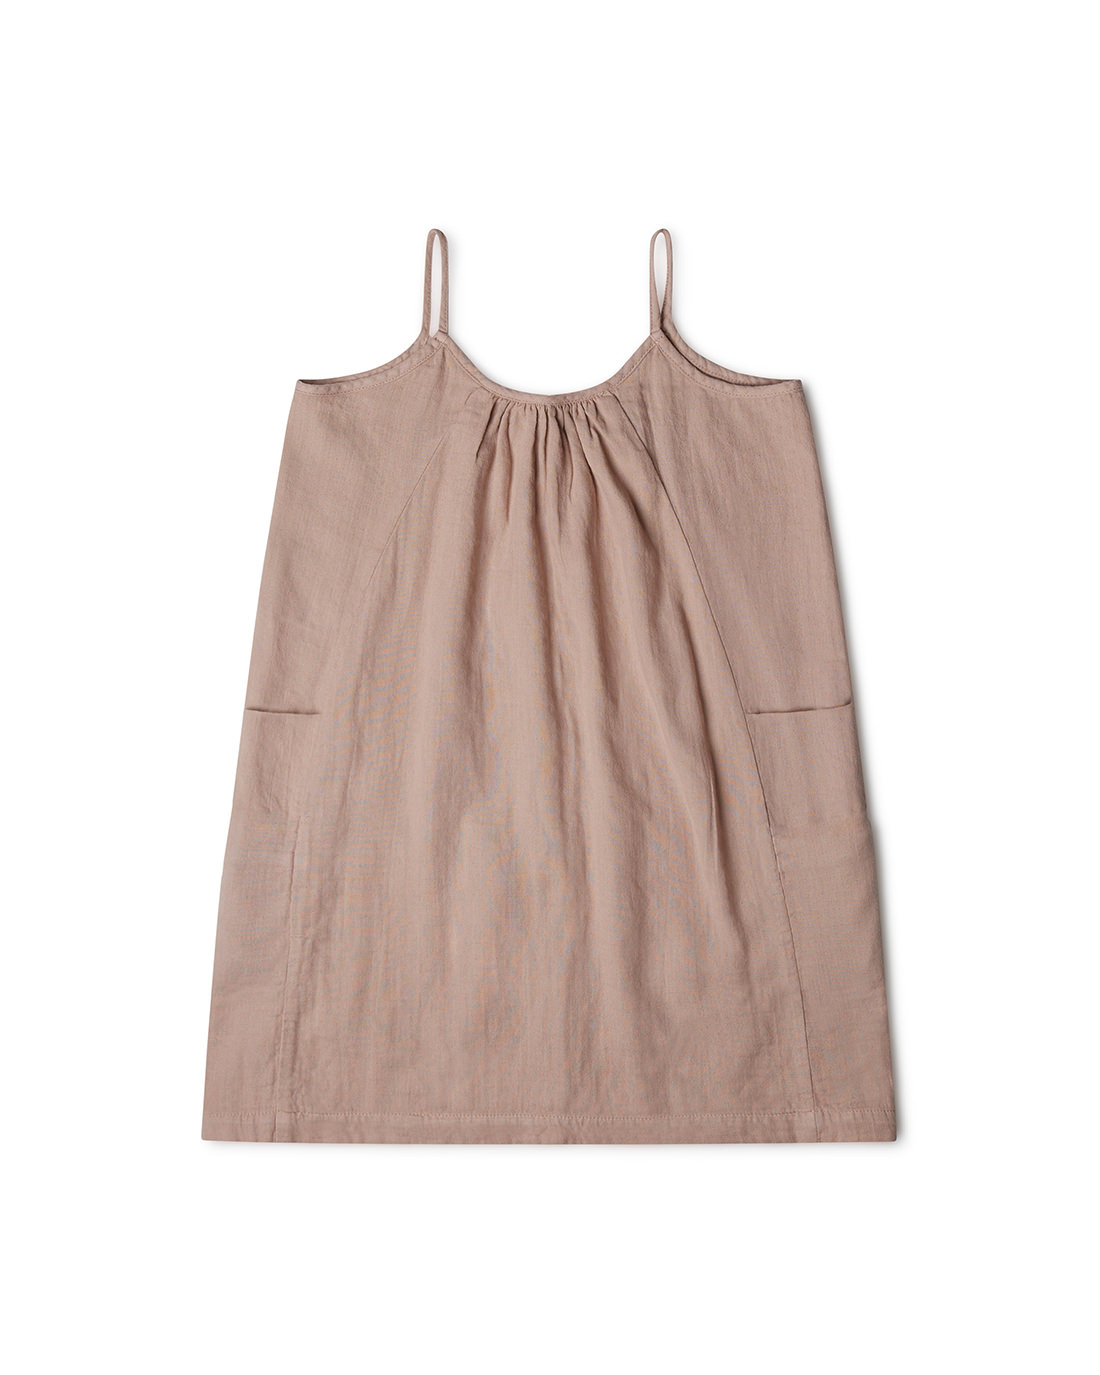 girls dress 100% organic cotton muslin